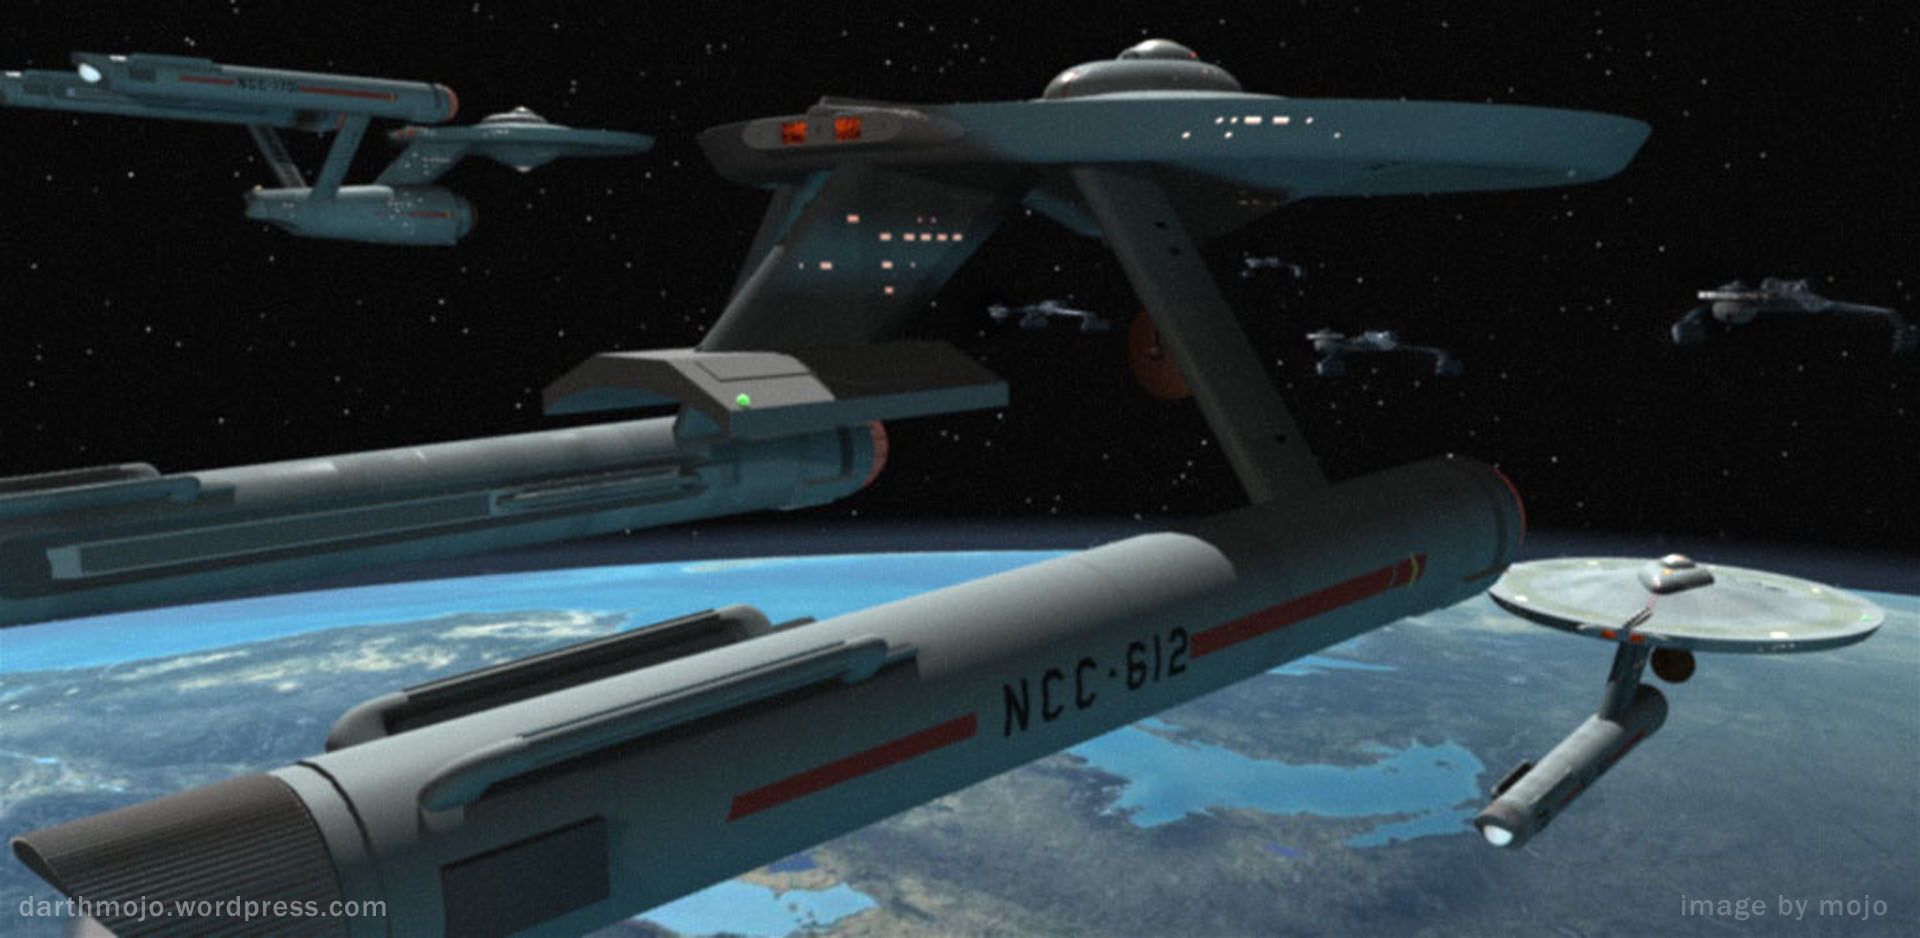 Way Back In 2001, Pocket Books Commissioned Me To Author A Star Trek Coffee  Table Book Of Cool Starship Imagery (I Bet You Didnu0027t Know That The Ships Of  The ...